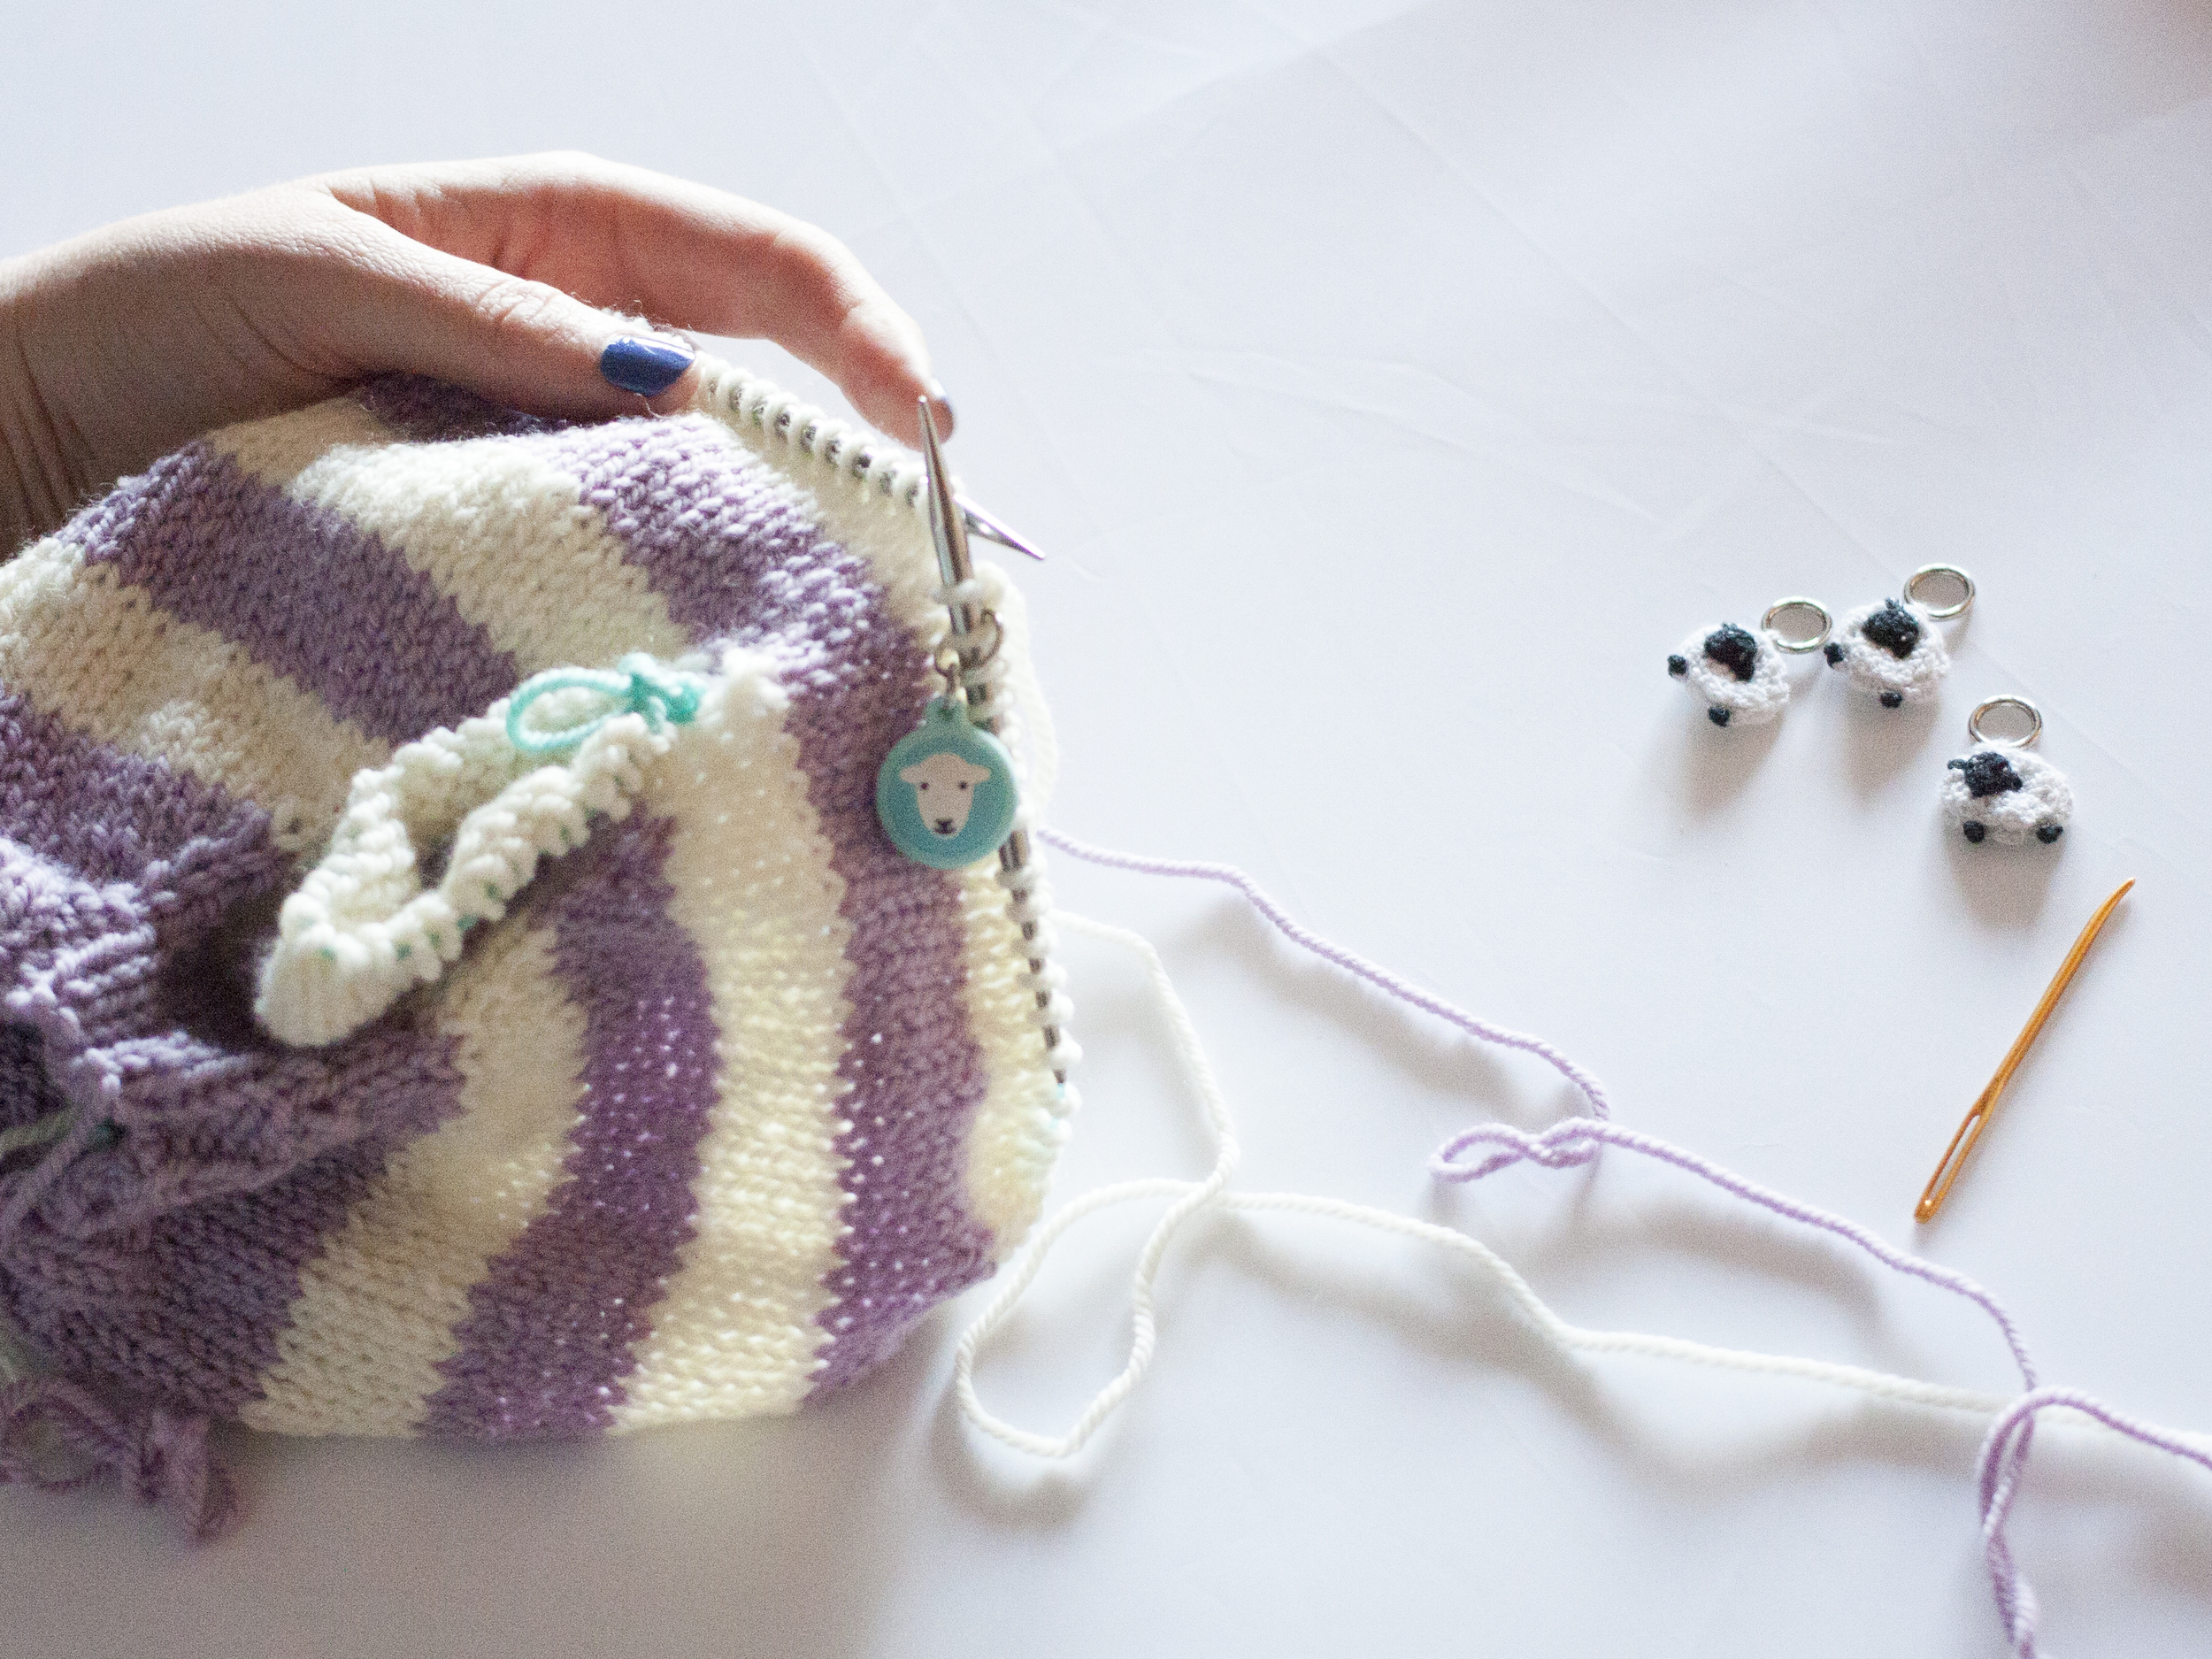 Continue knitting in stripes